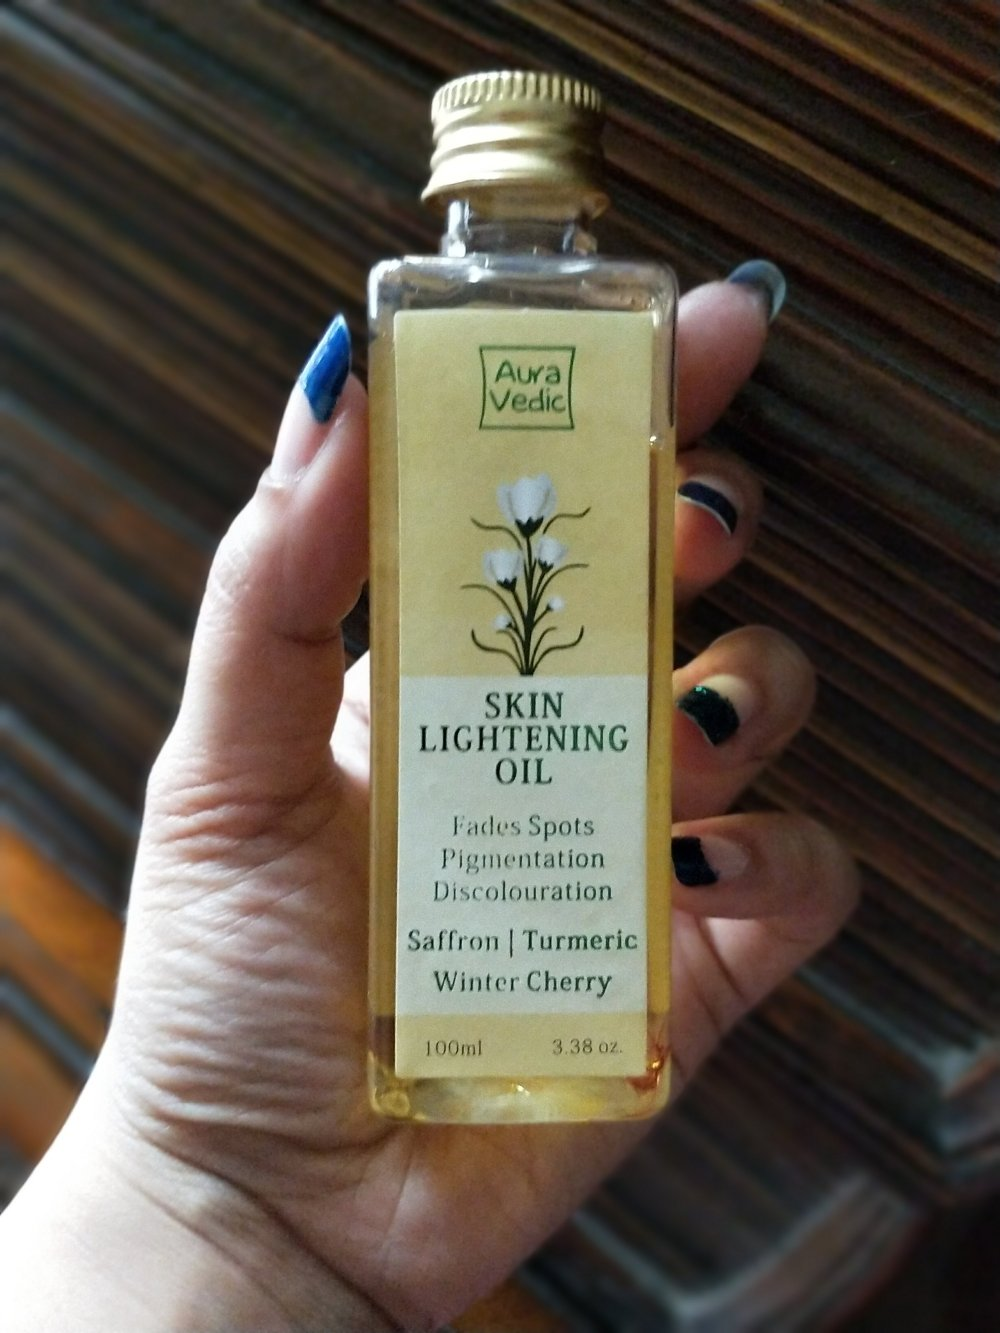 AuraVedic Beauty Skin Lightening Oil Review